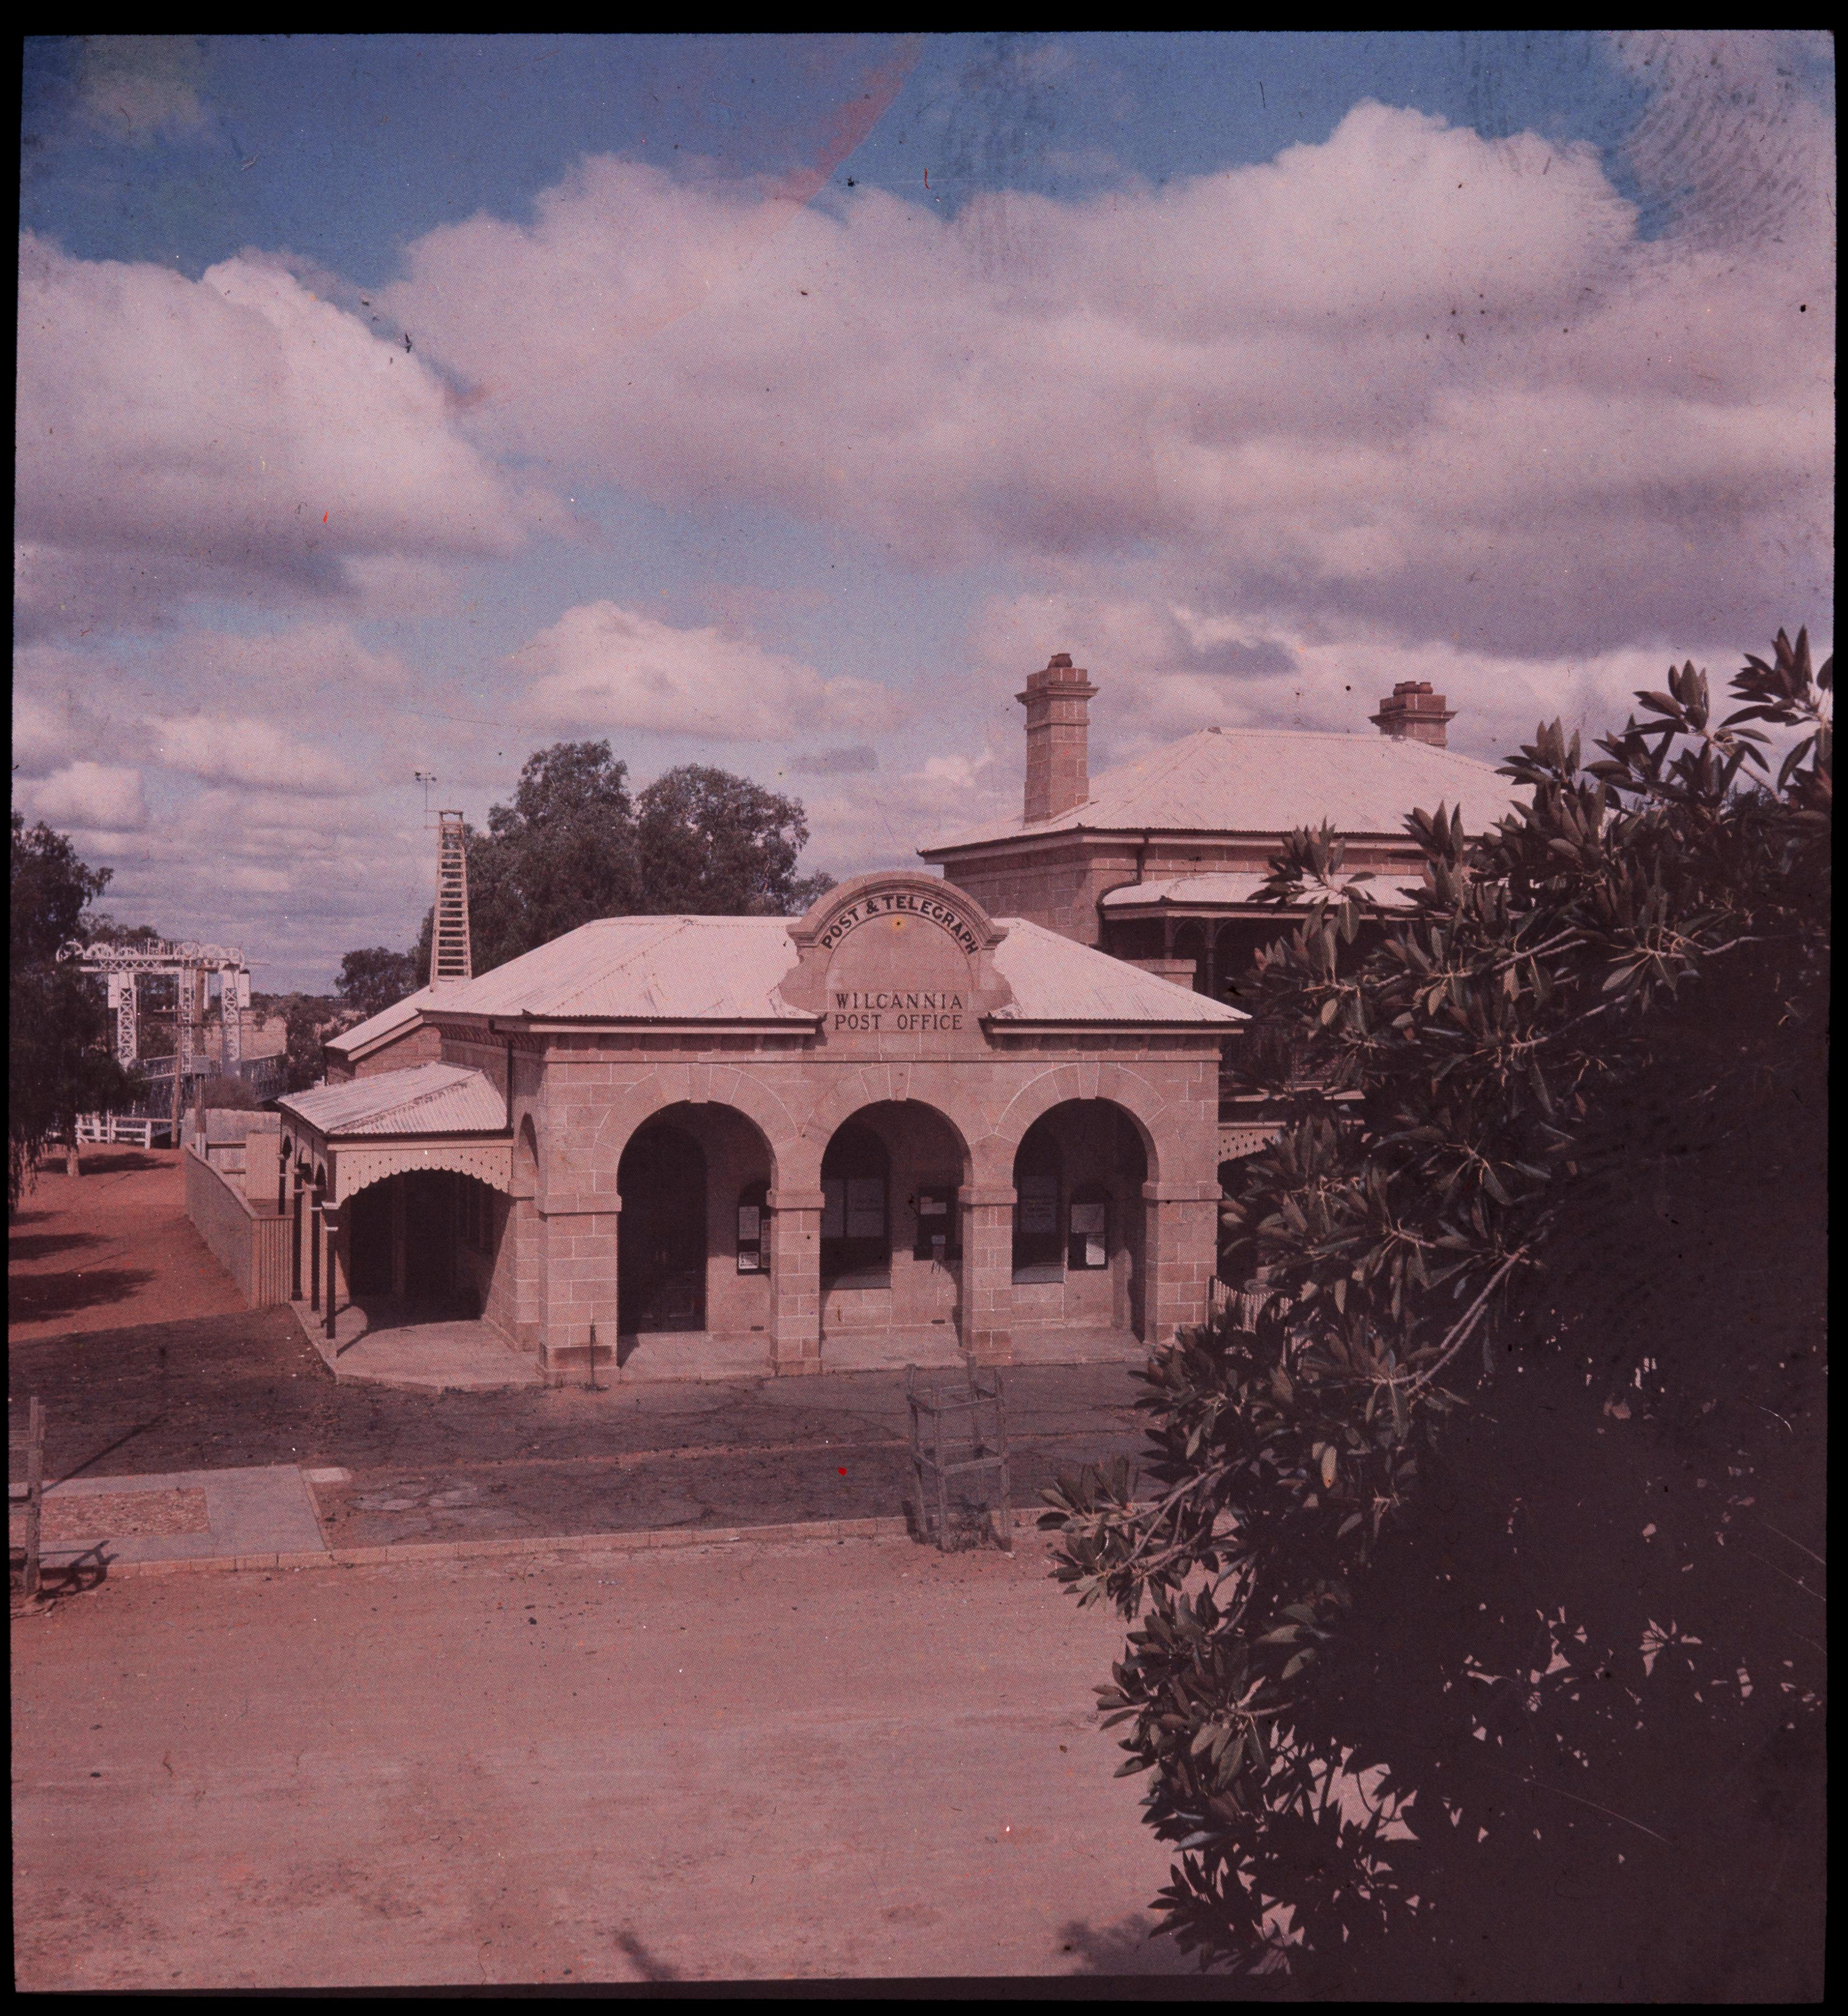 Post Office, Wilcannia, NSW, between 1935-1937 / photographer Reverend Edward (